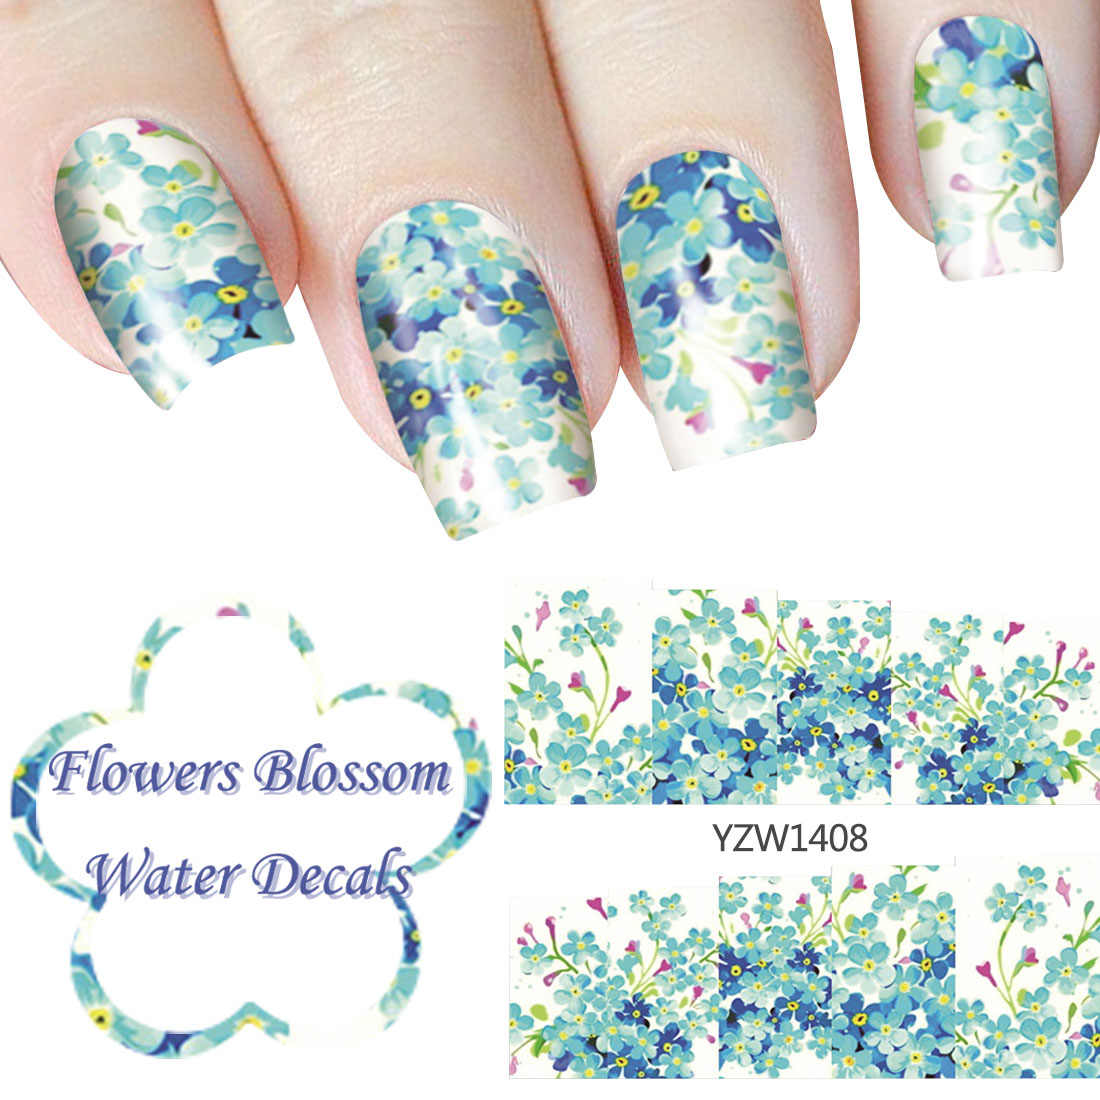 Nail Foil Glue Romantic Blue Flowers Blossom Water Decal Nail Art Manicure Stickers for Nails Adesivos Nail Water Sticker